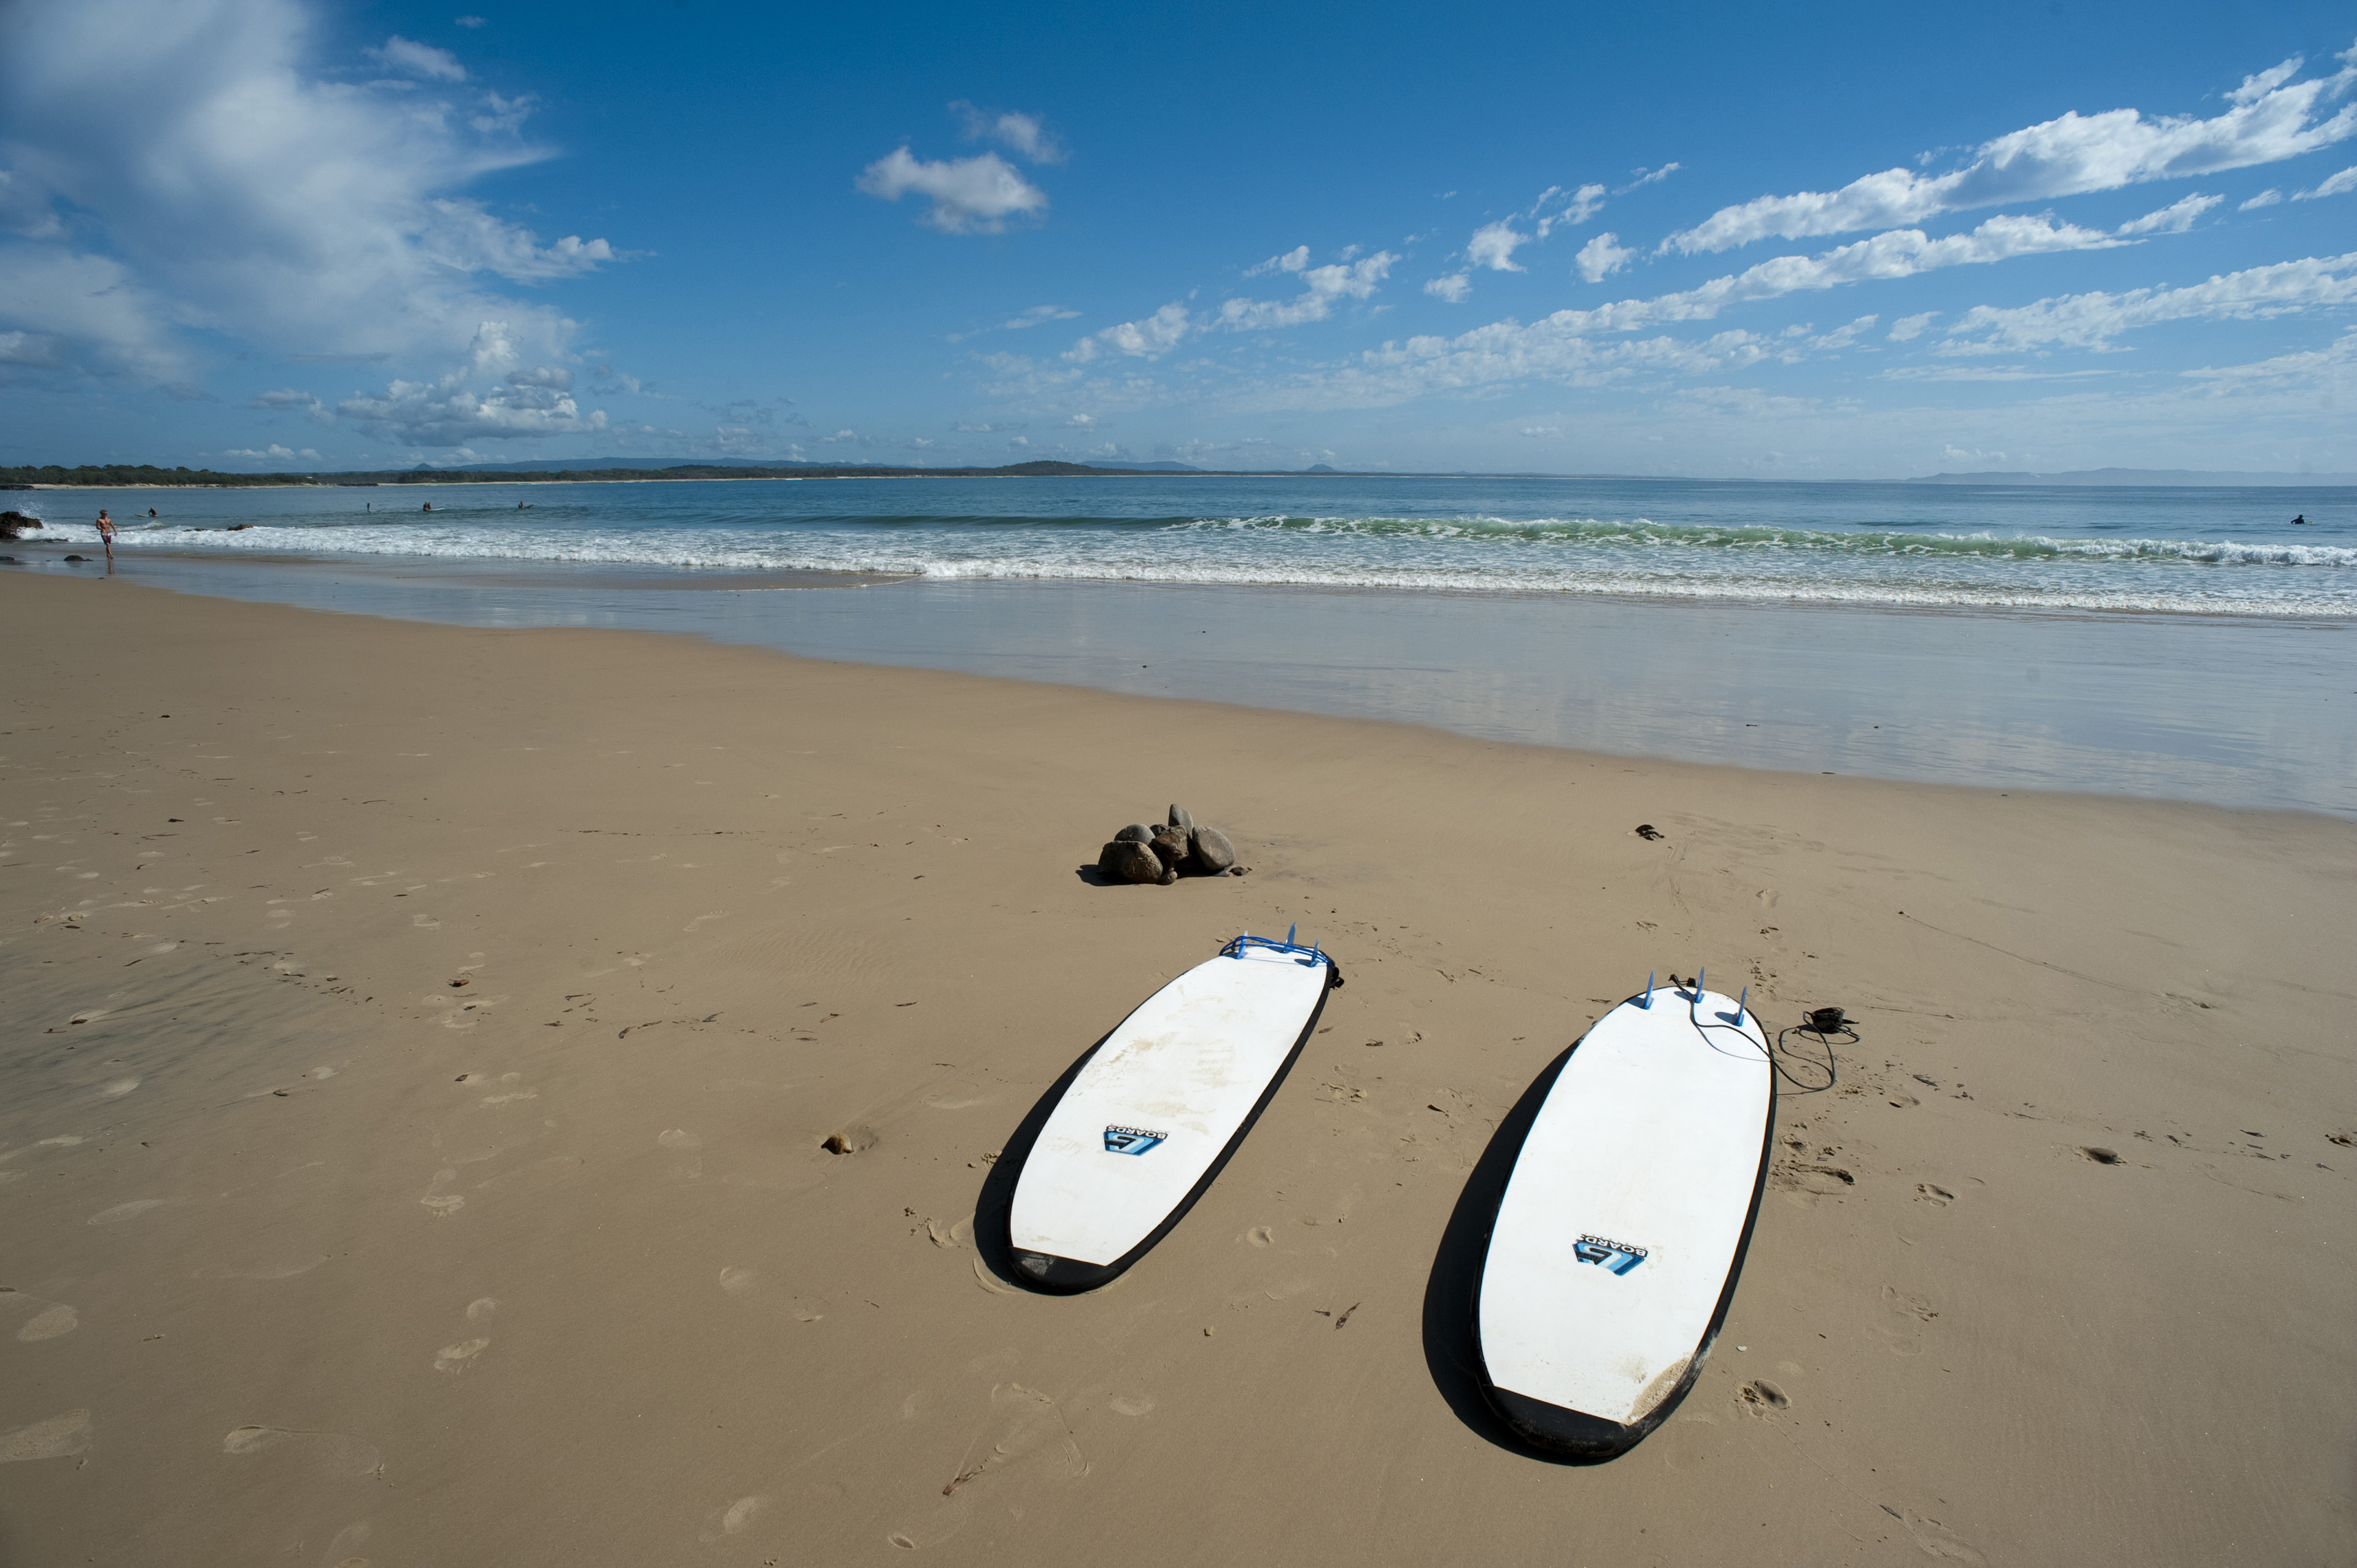 Surfing on a tropical beach concept with two surfboards left lying on the wet sand in front of a calm ocean, with copy space